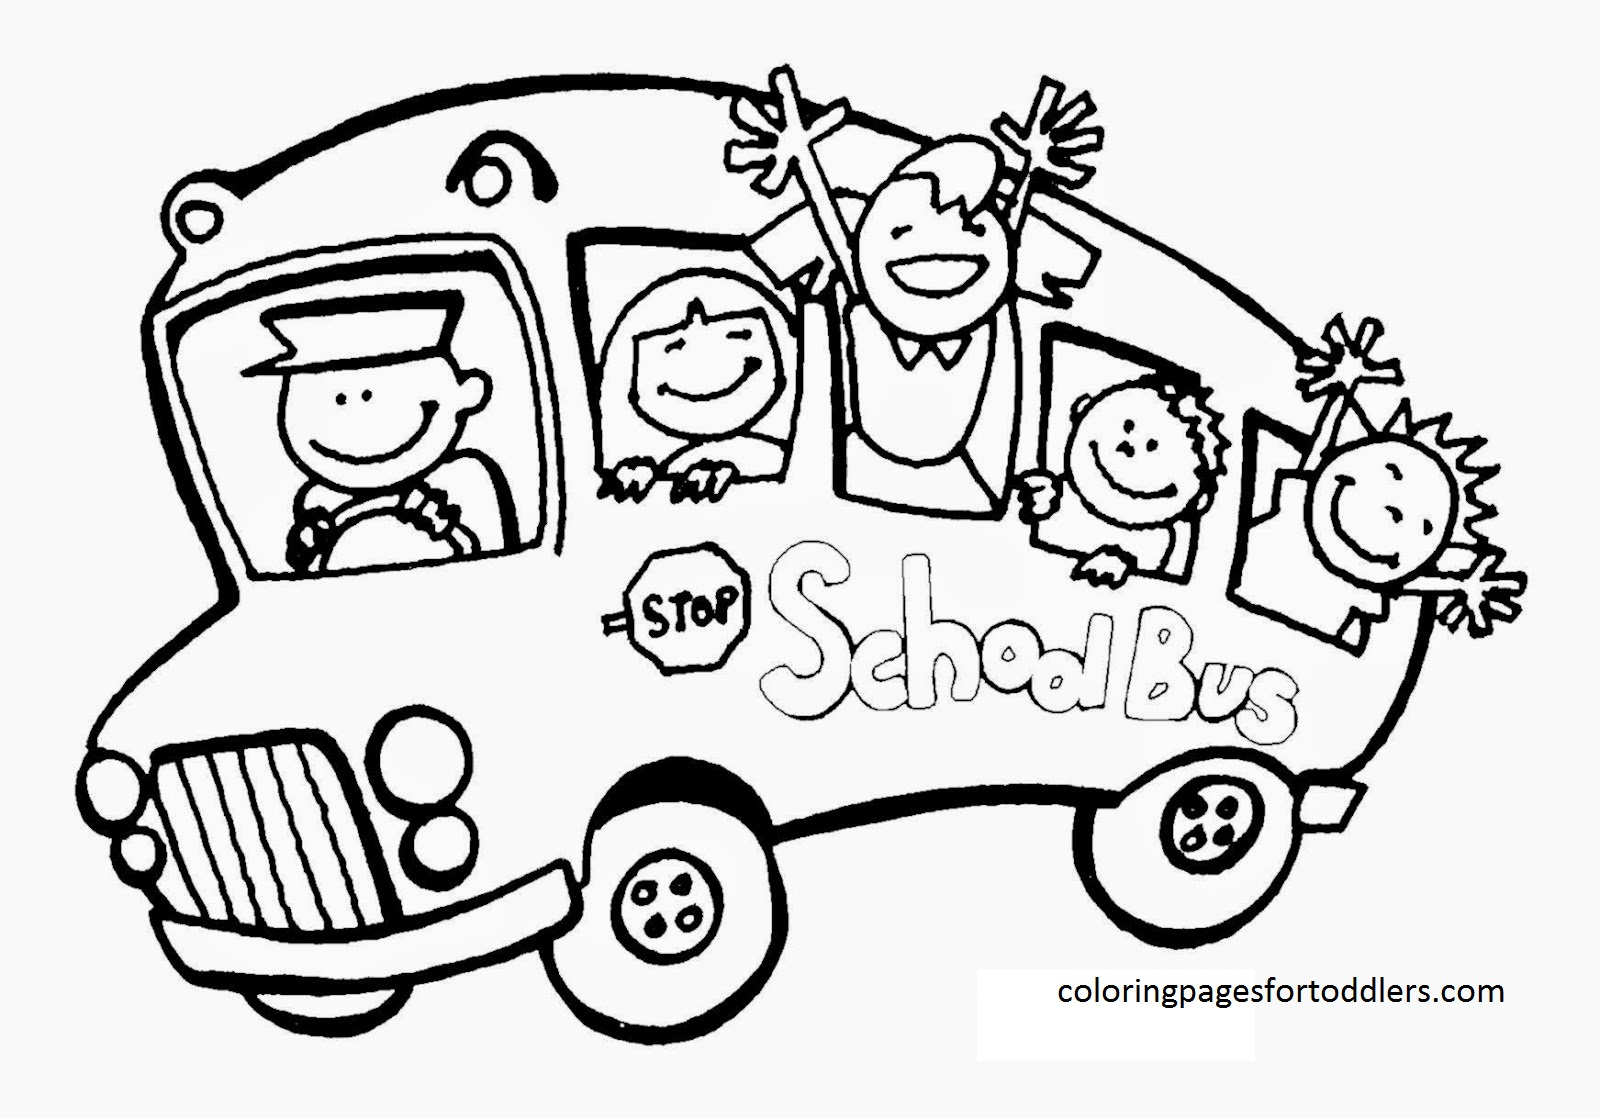 school-bus-goes-to-school-coloring-pages